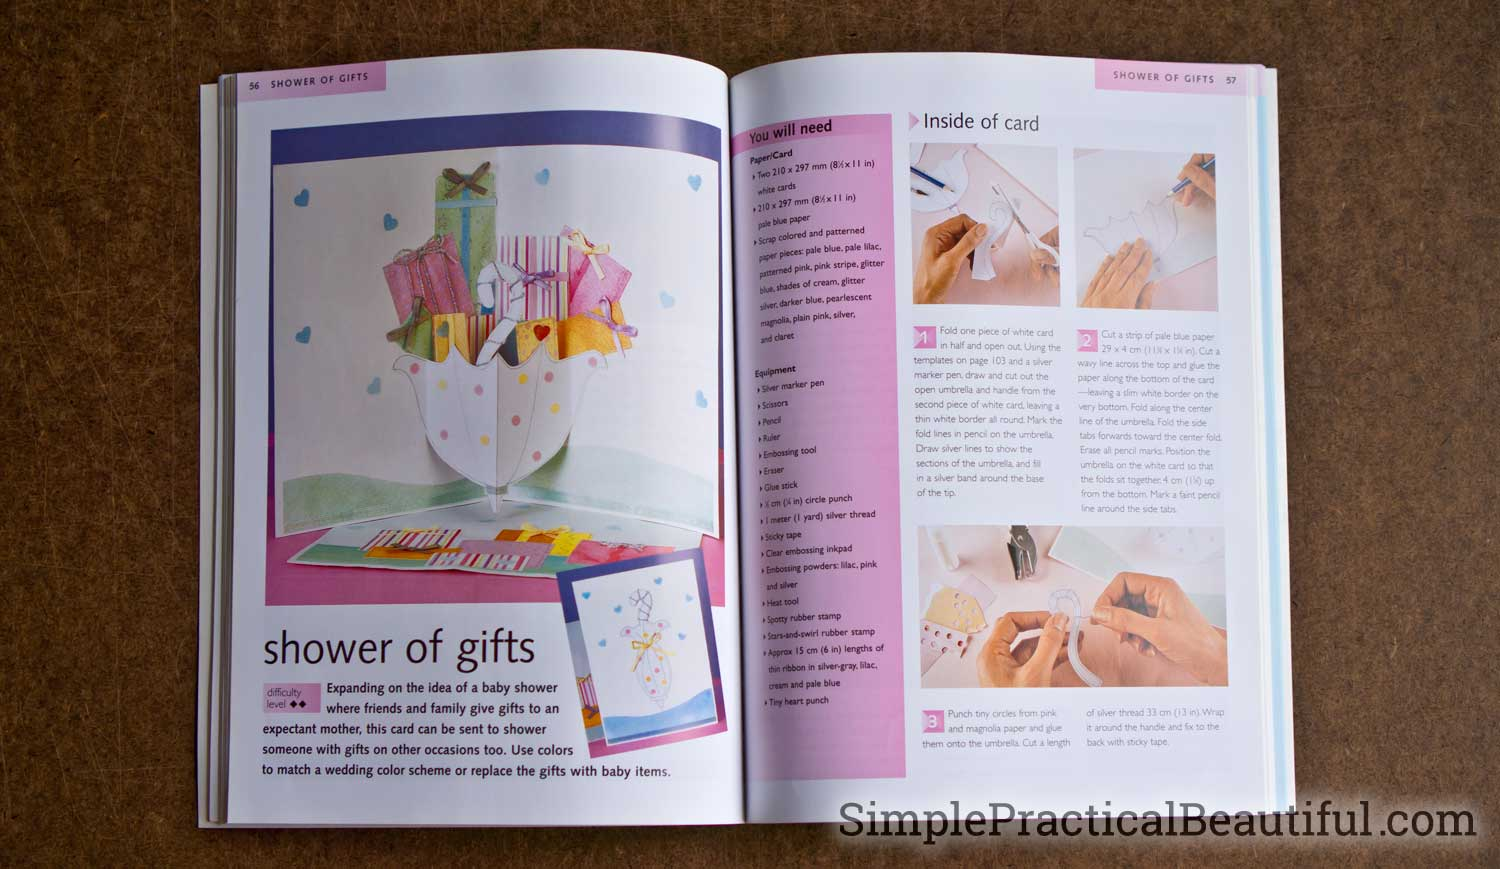 A book all about how to make pop-up cards with color photos and detailed instructions